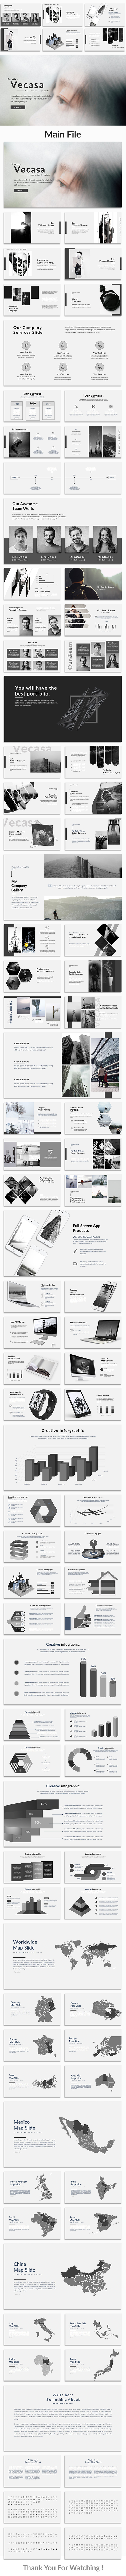 Vecasa Minimal Google Slide Template - Google Slides Presentation Templates